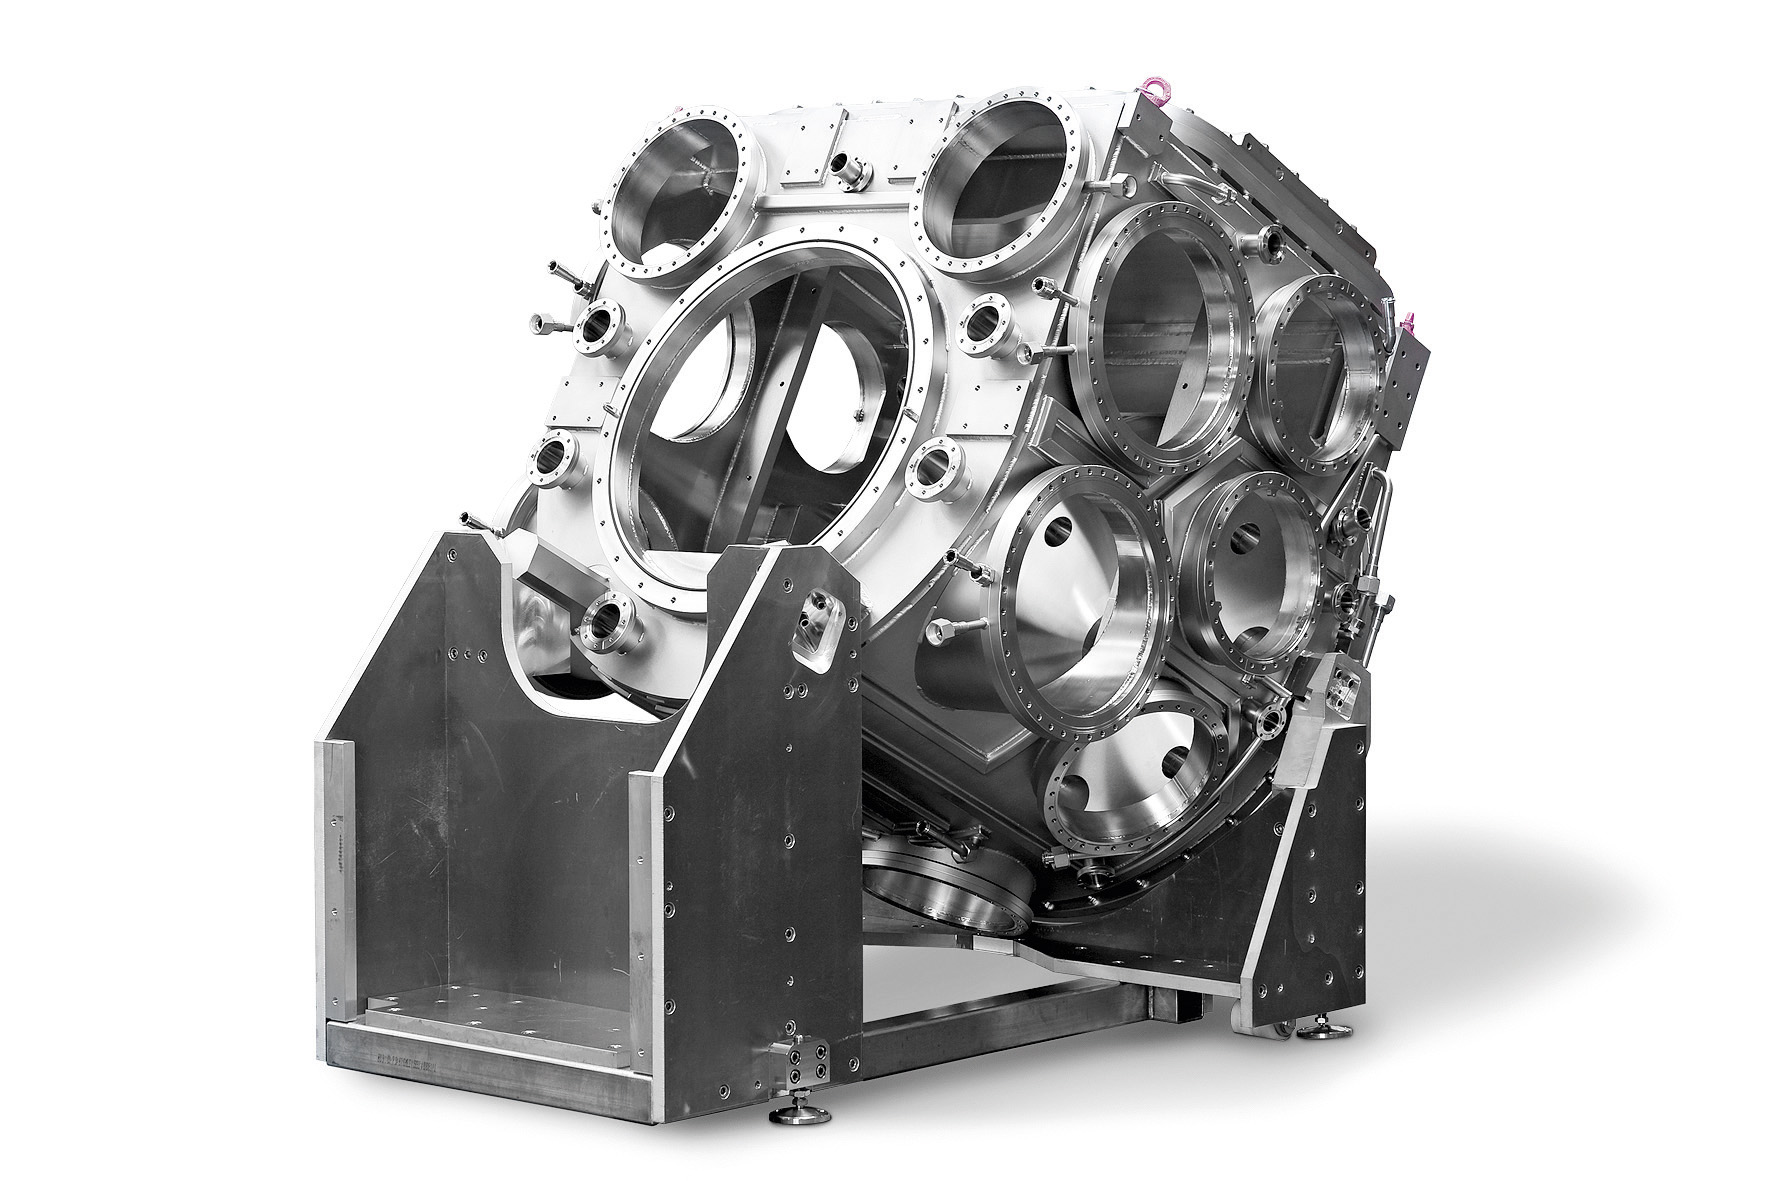 EUV source chamber with cooling profiles 						and  water-cooled flanges